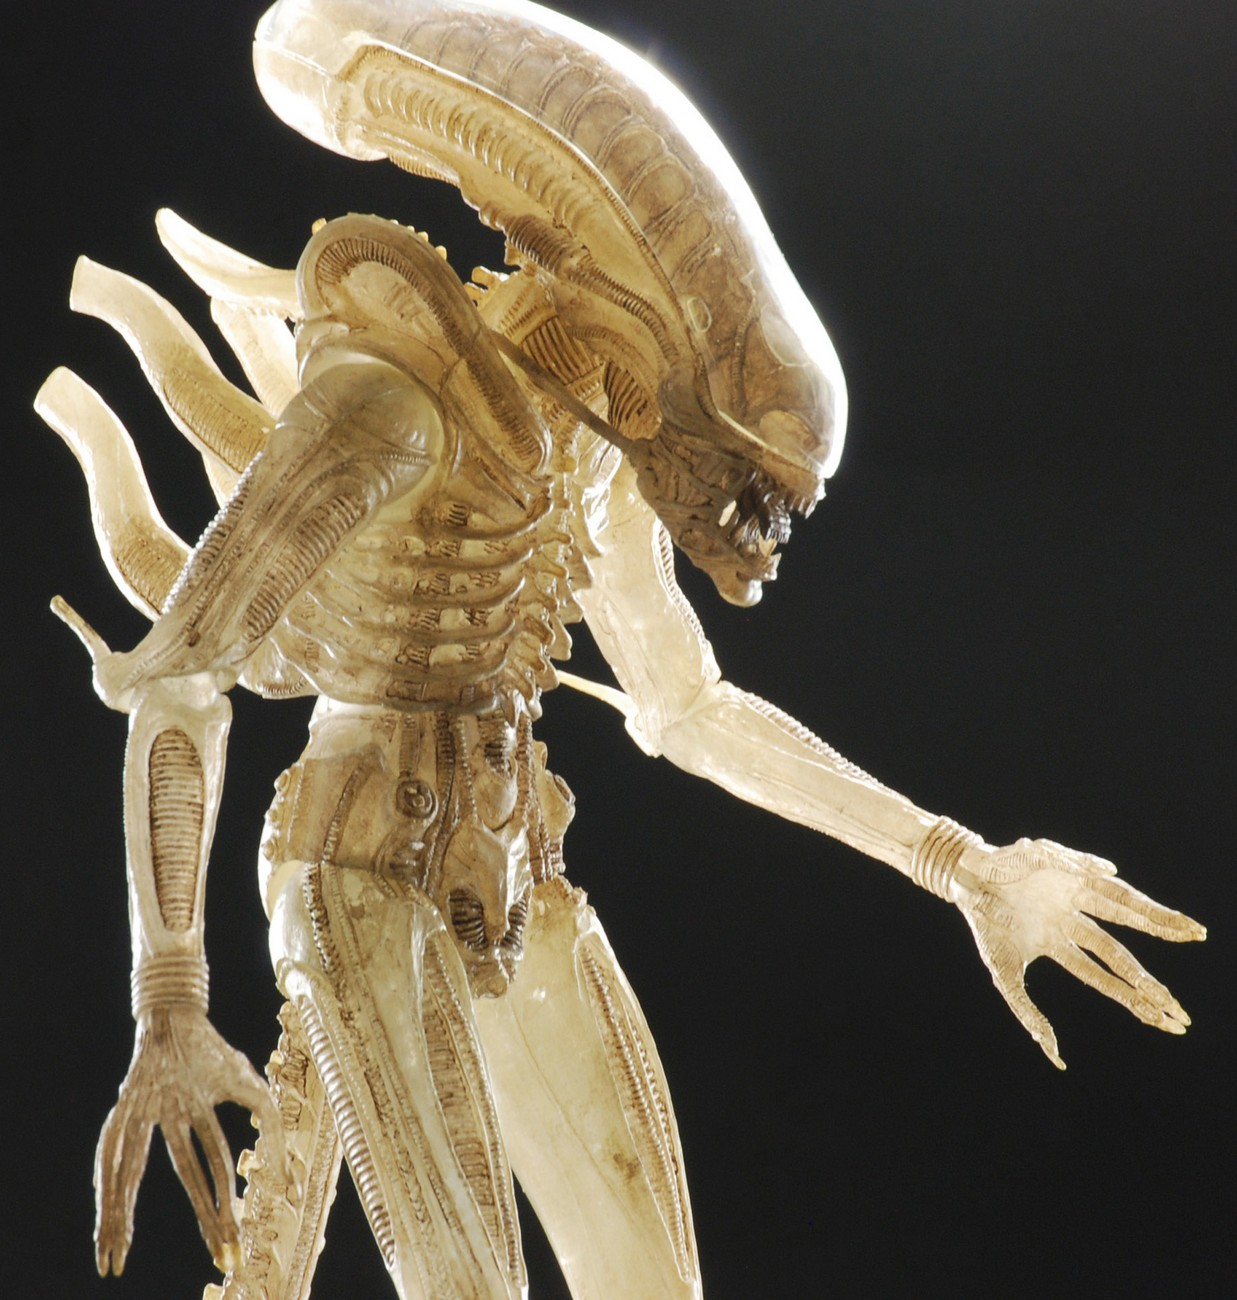 NECA Quarter Scale Concept Alien Announced 004